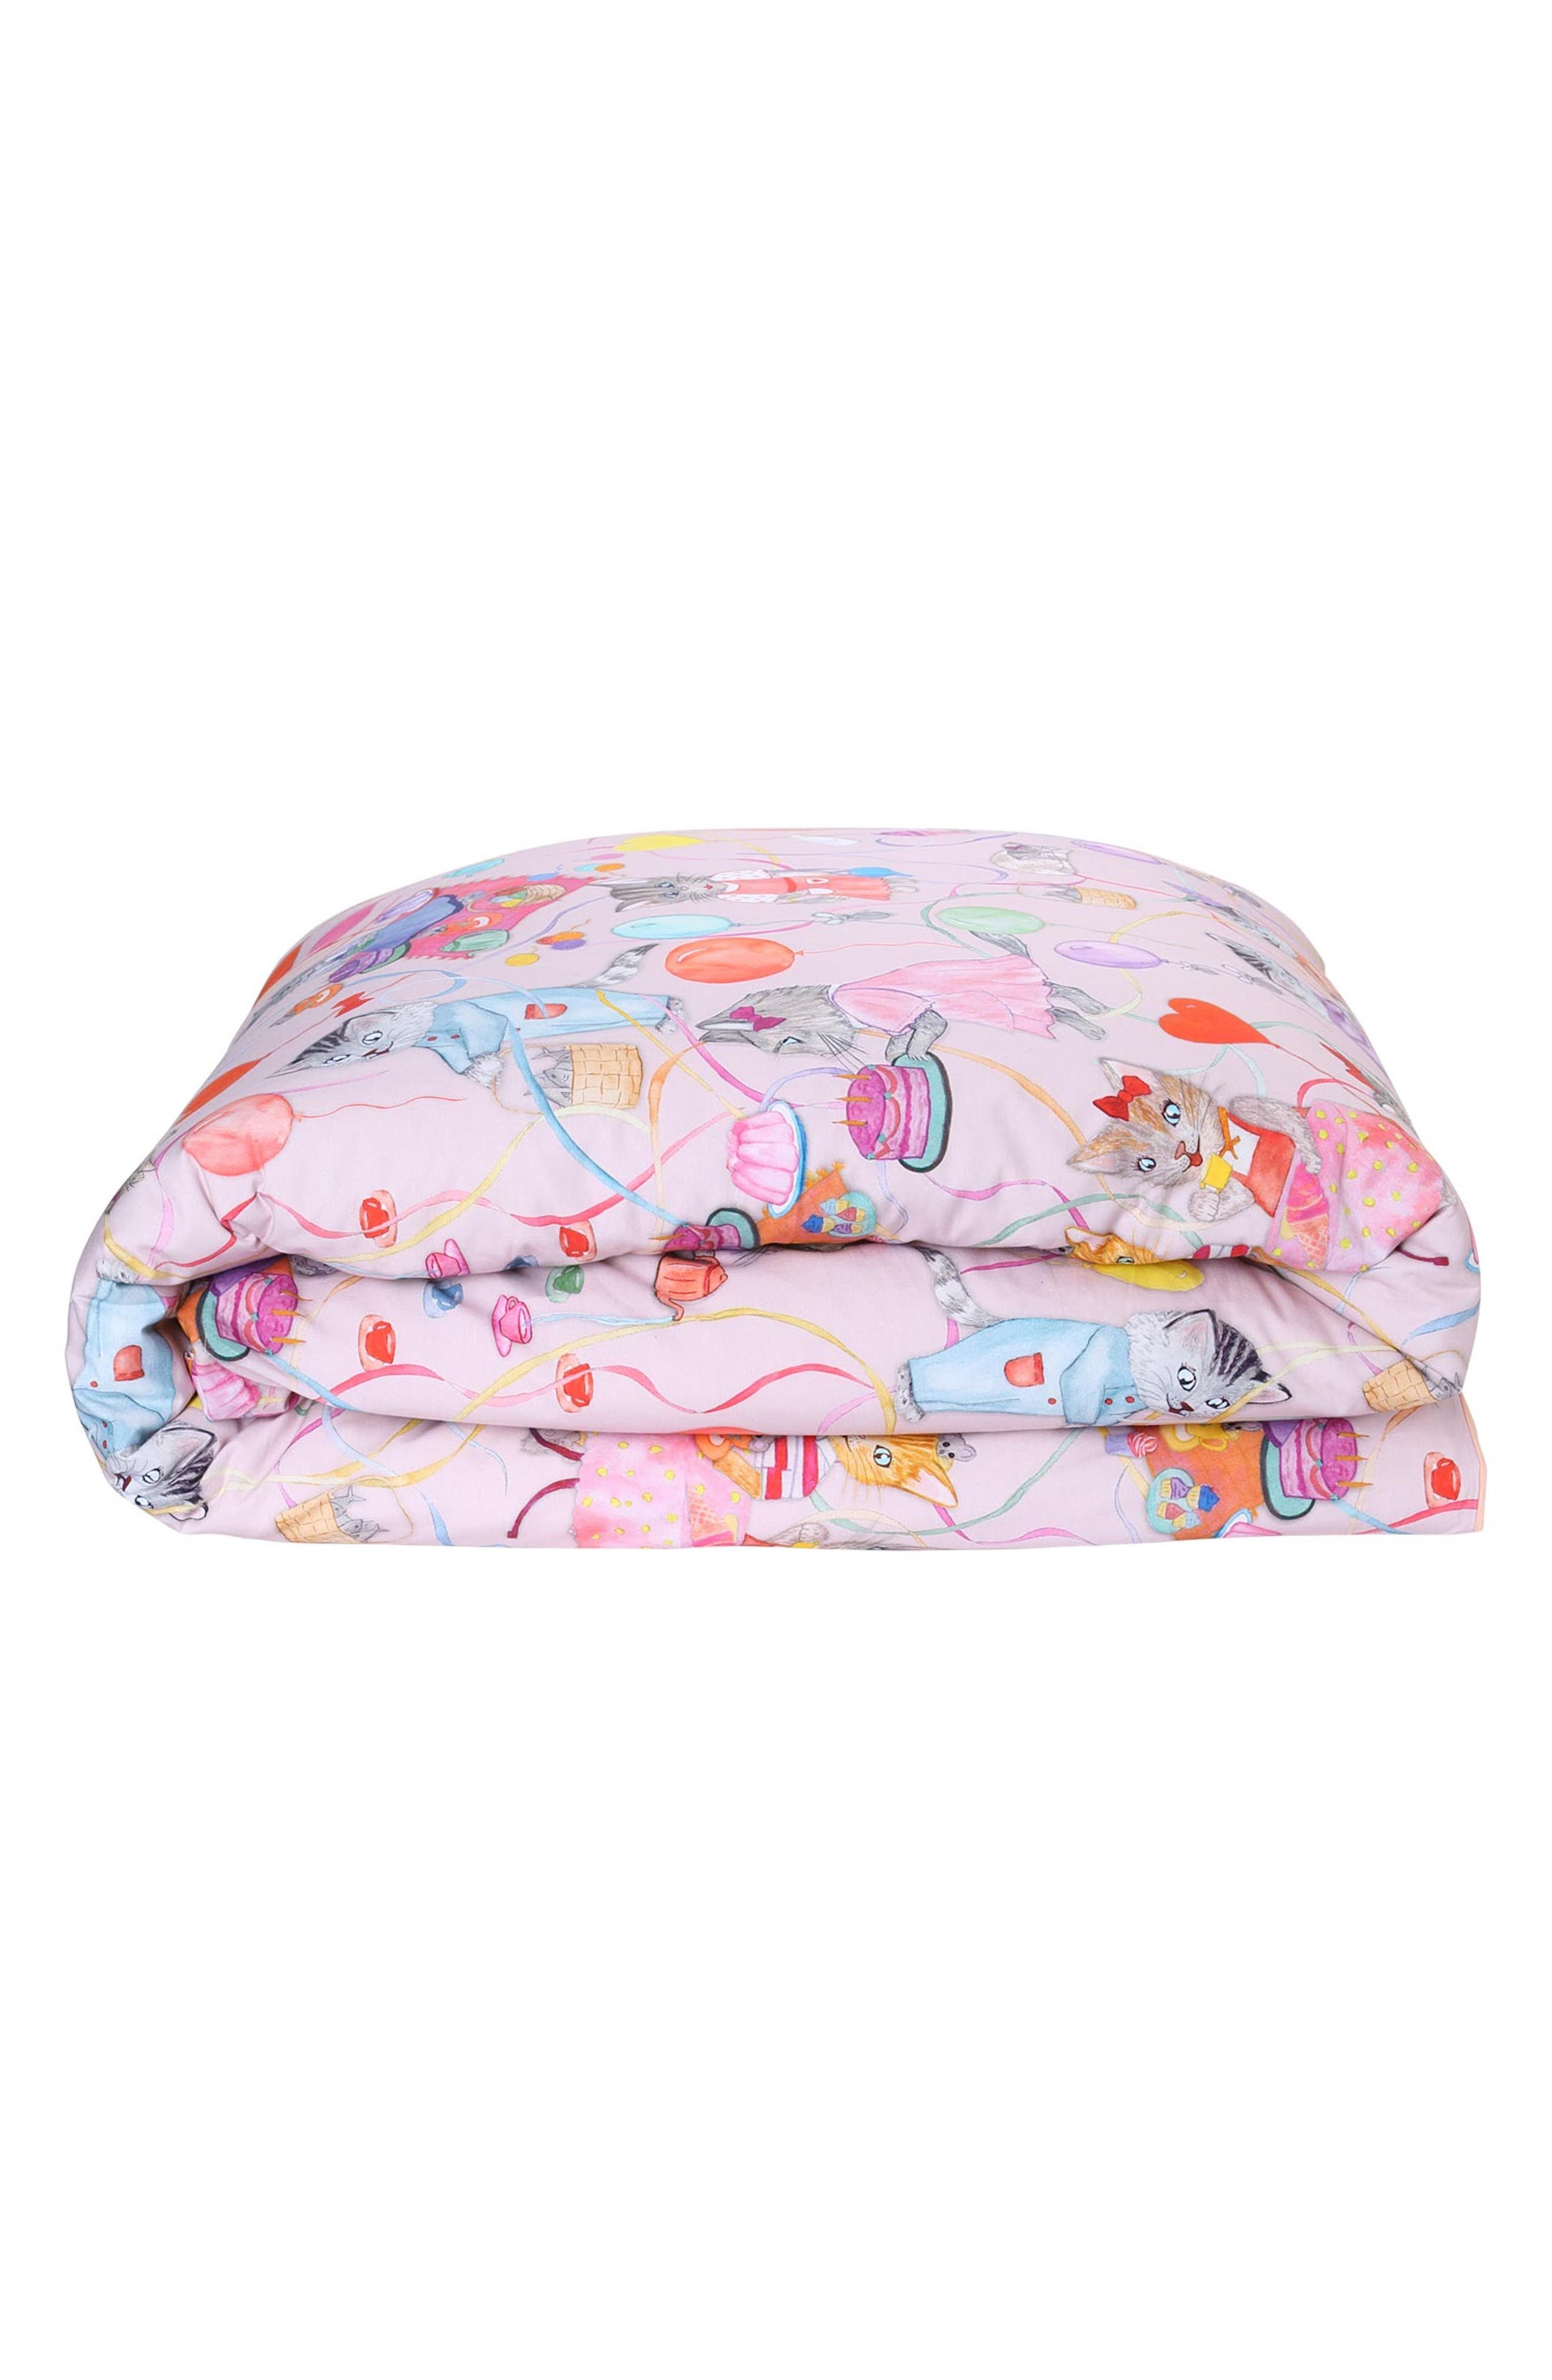 The Kitty Party Cotton Duvet Cover,                         Main,                         color, Multi